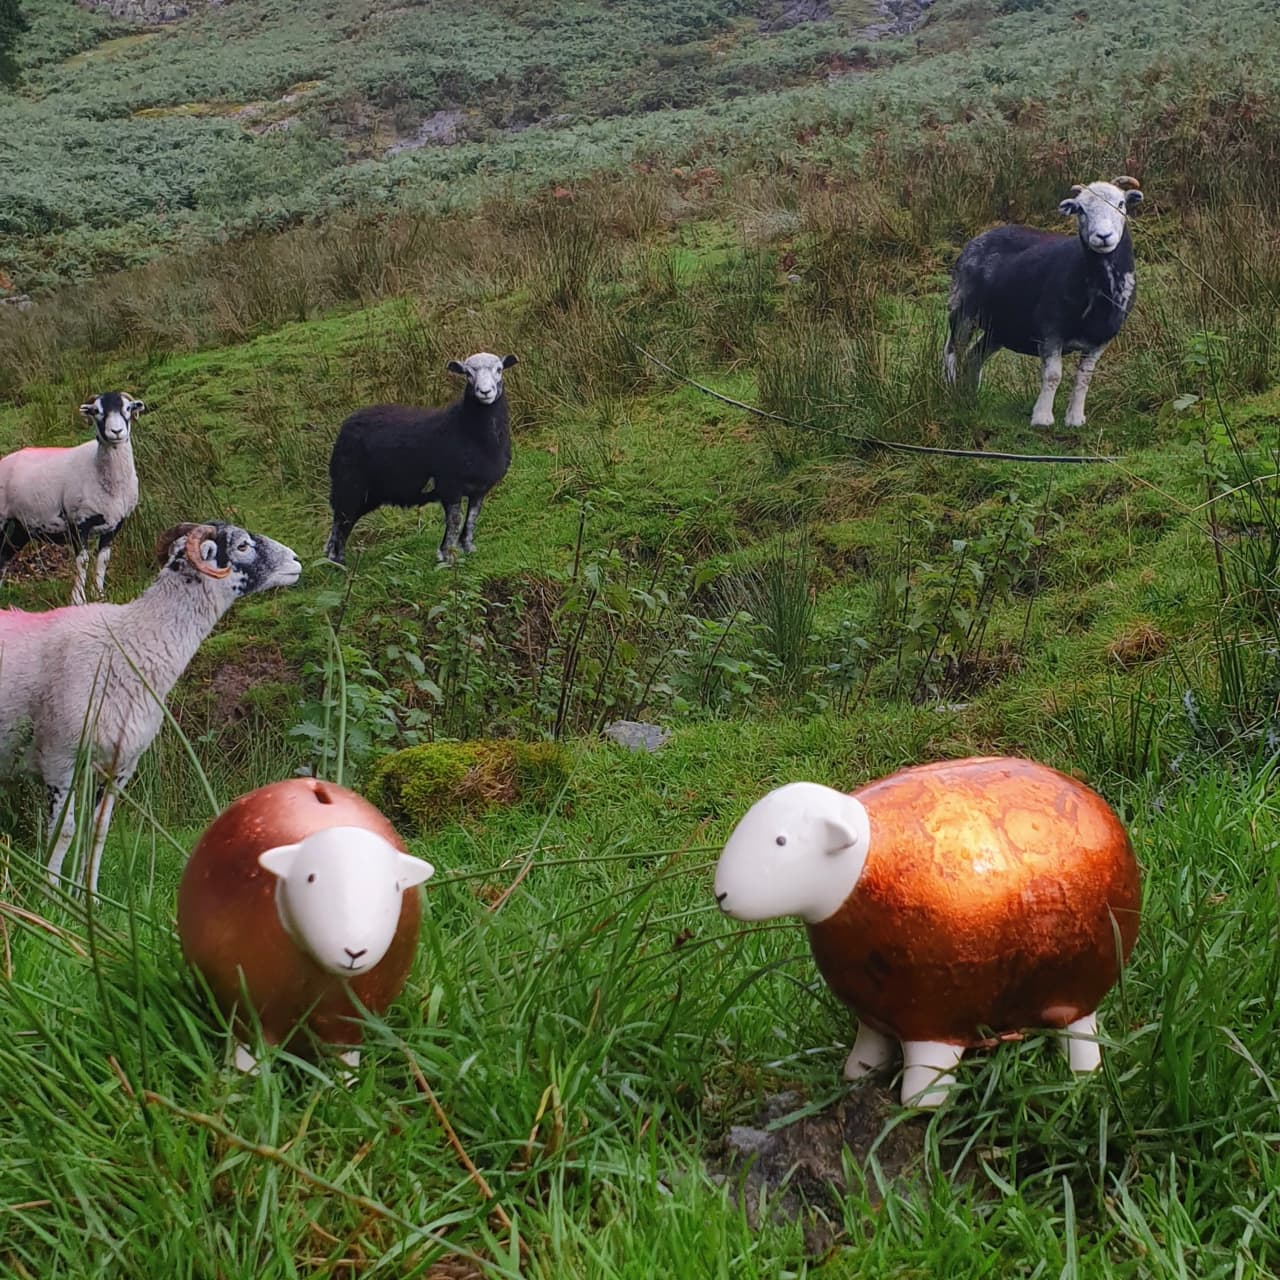 Herdwick sheep looking a little bemused in the presence of the two Copper Herdys